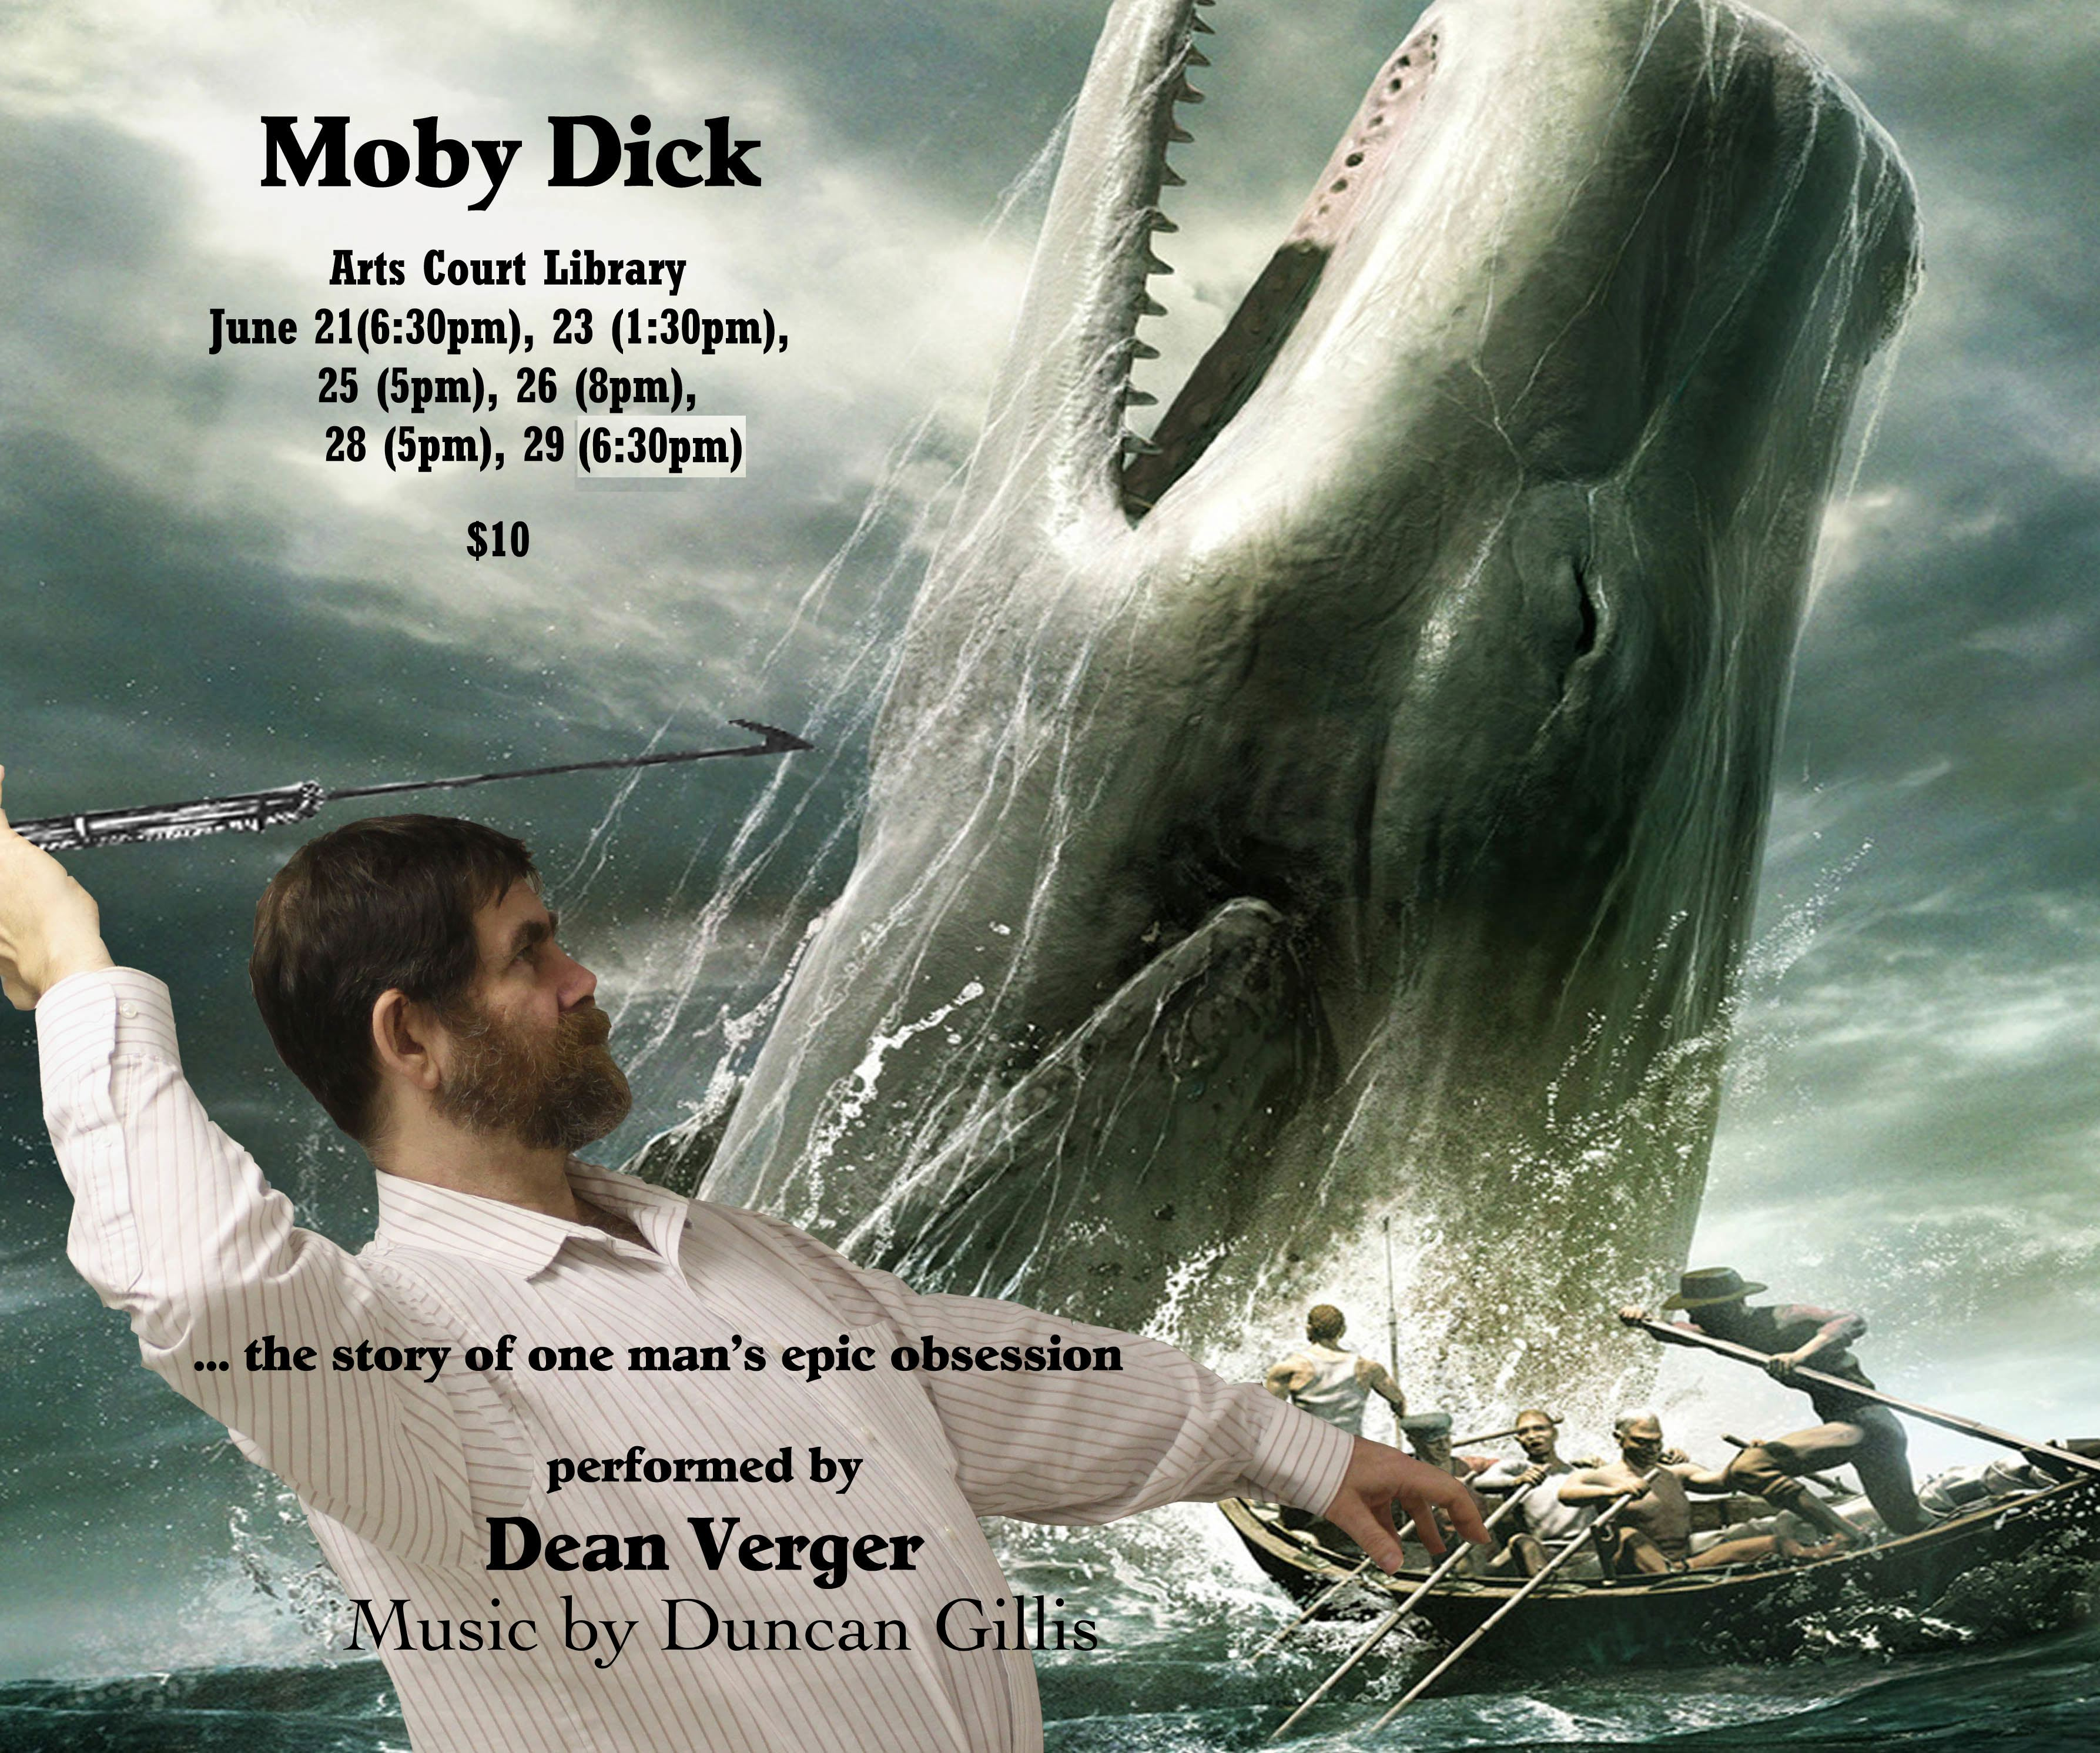 poster of Moby Dick show